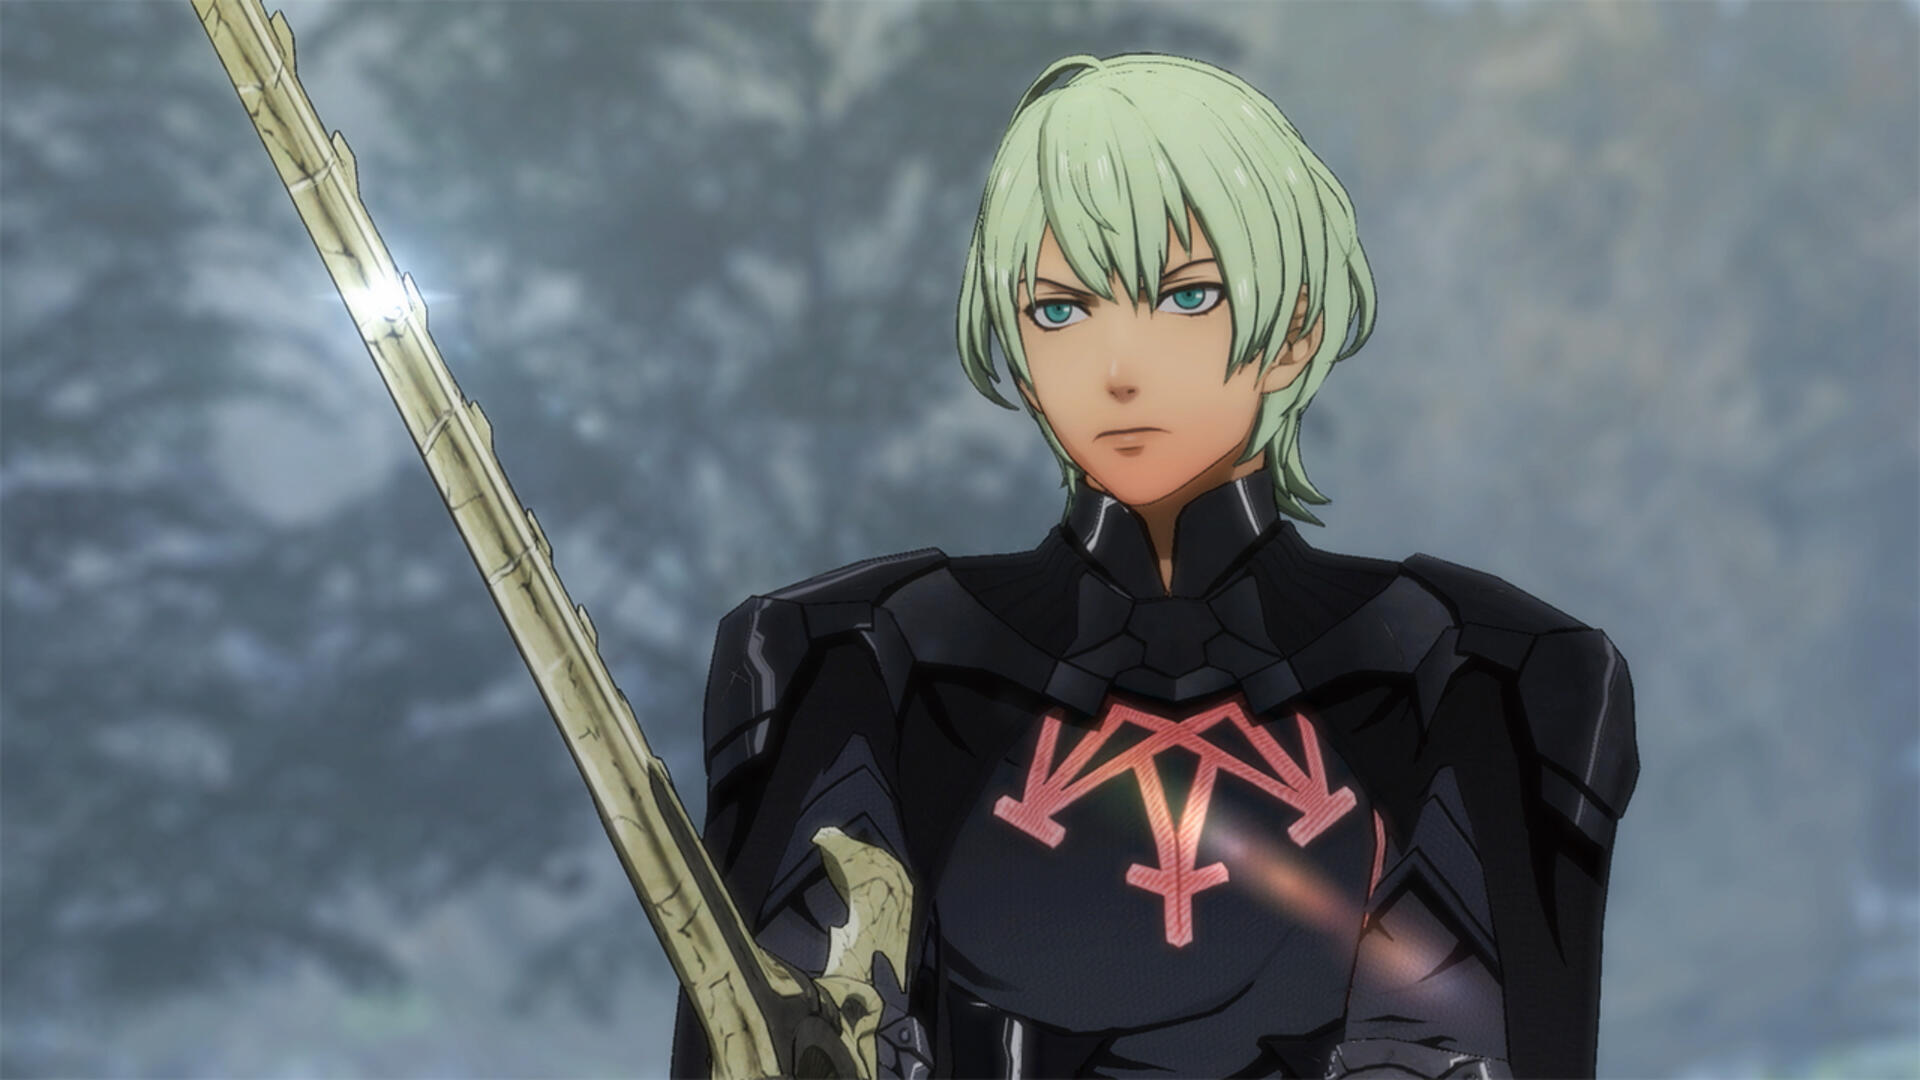 Fire Emblem: Three Houses Drops the Iconic Weapon Triangle. Here's What That Means for the Gameplay